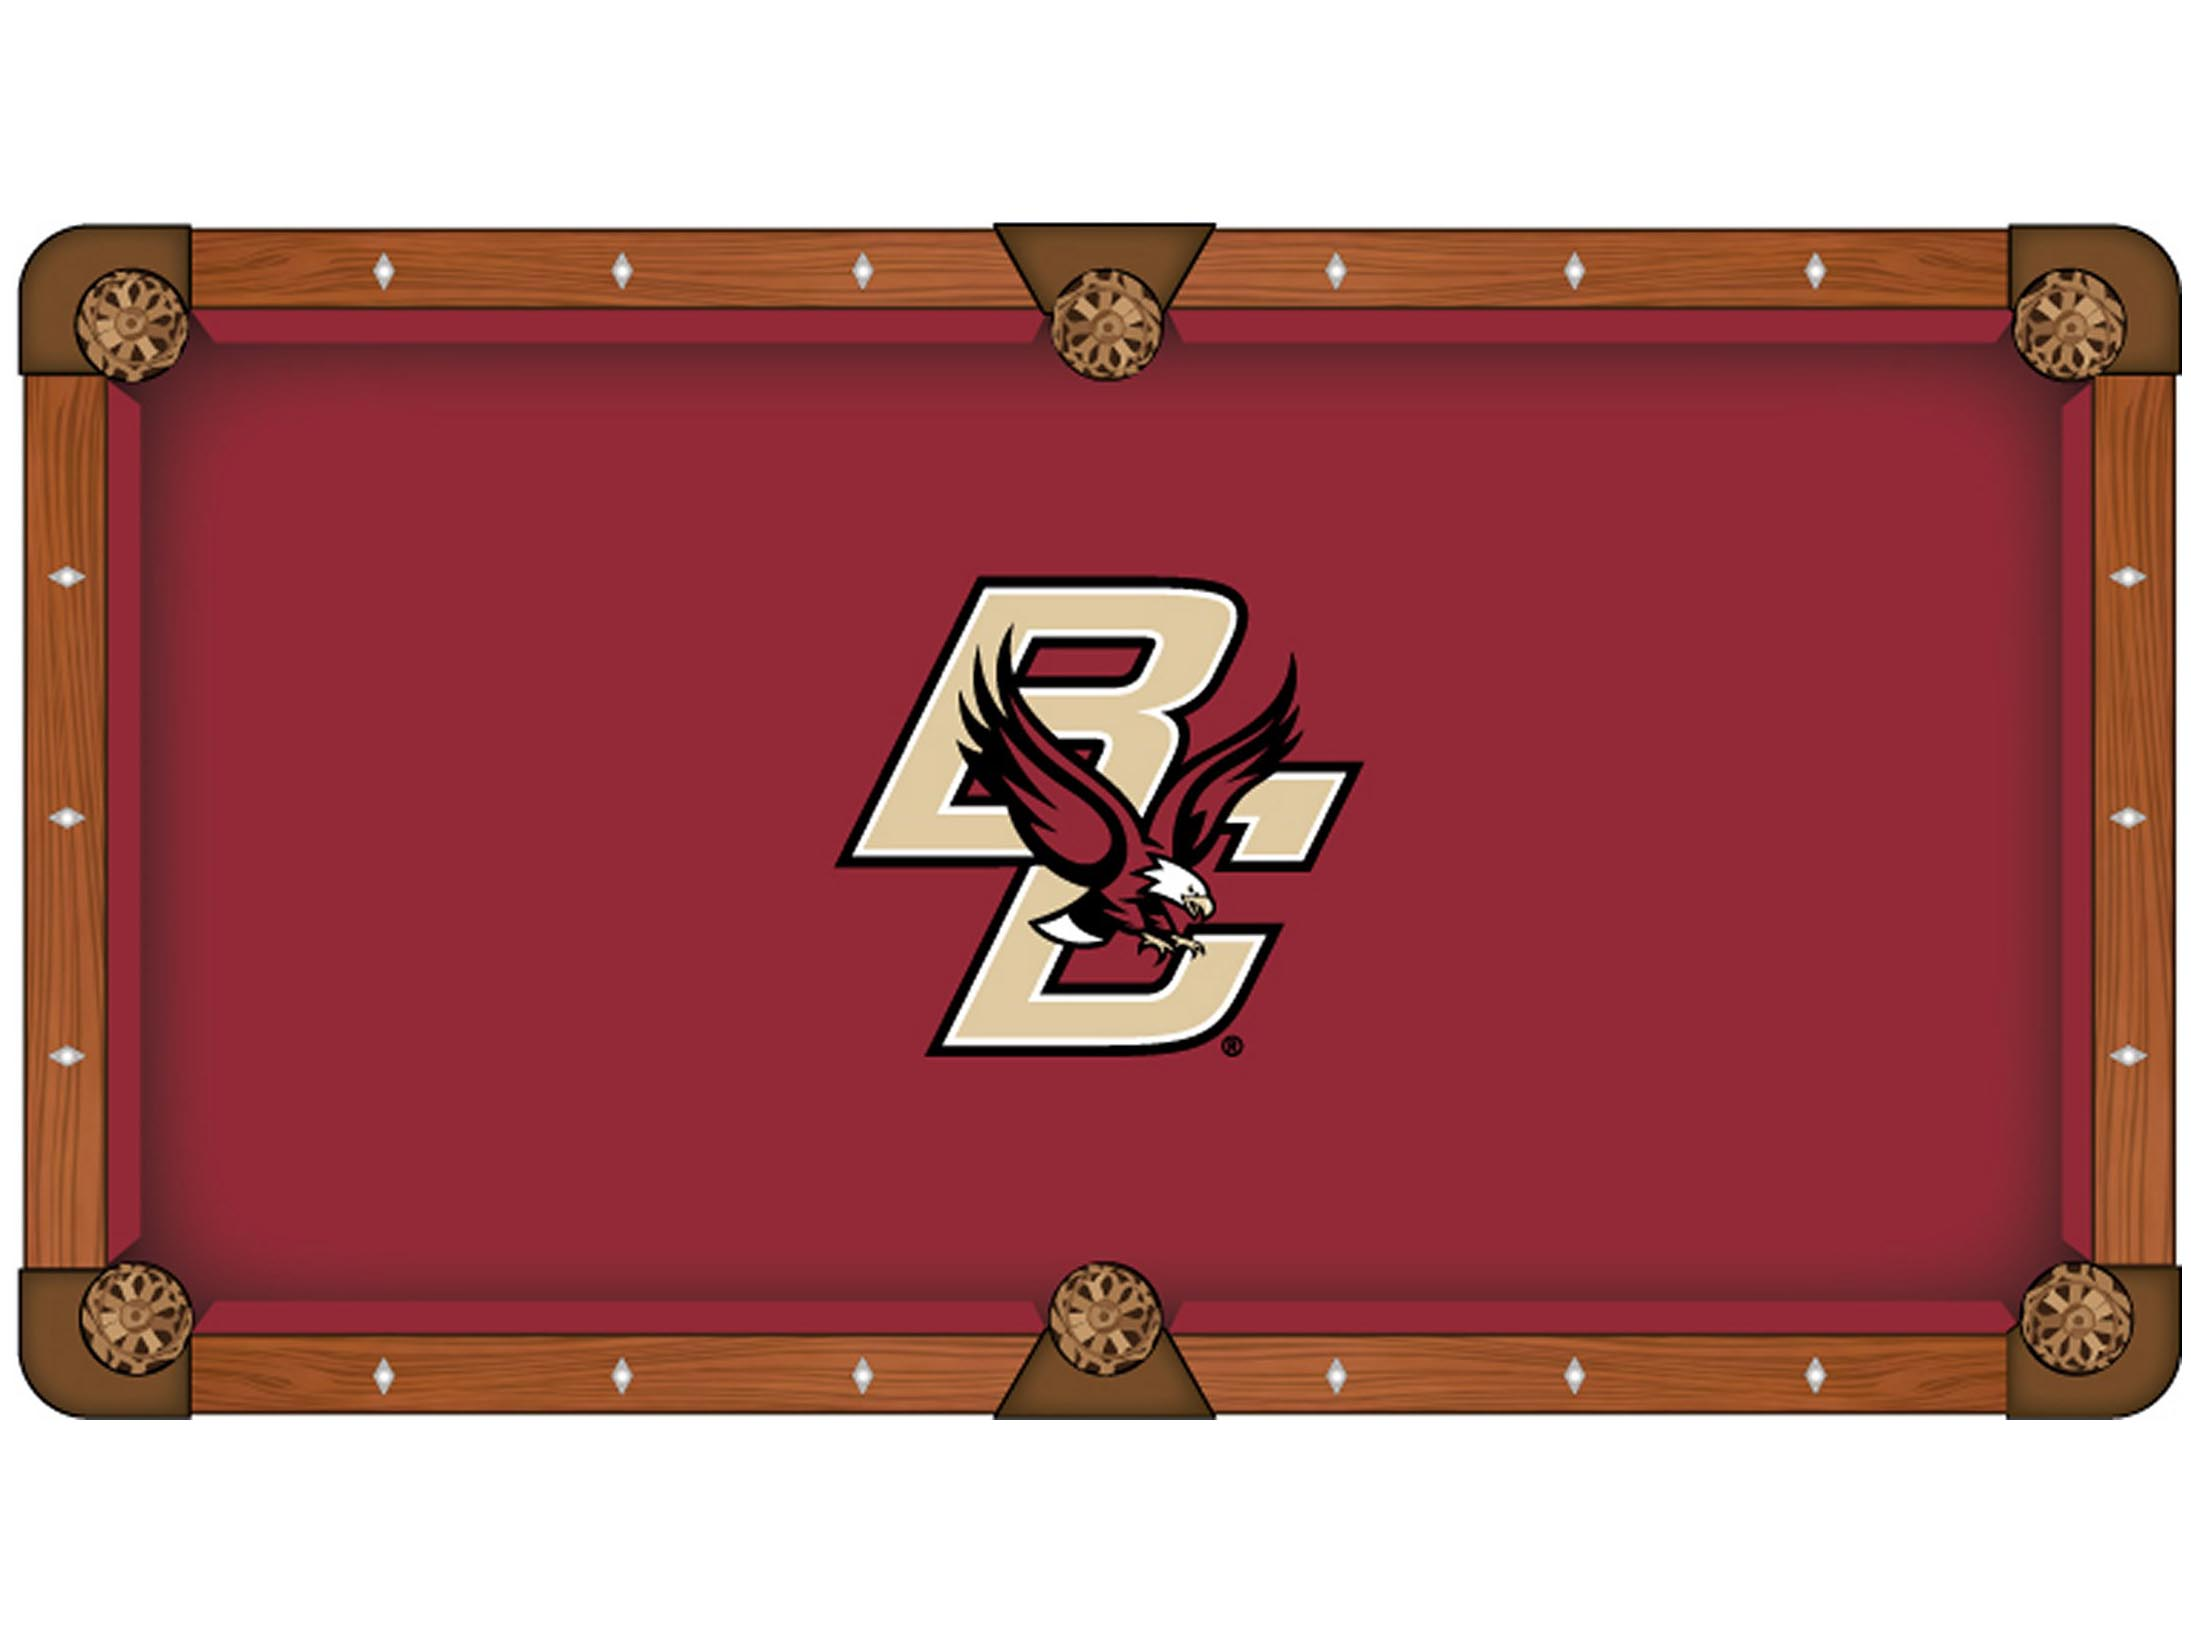 Superb Boston College Pool Table Cloth Product Photo